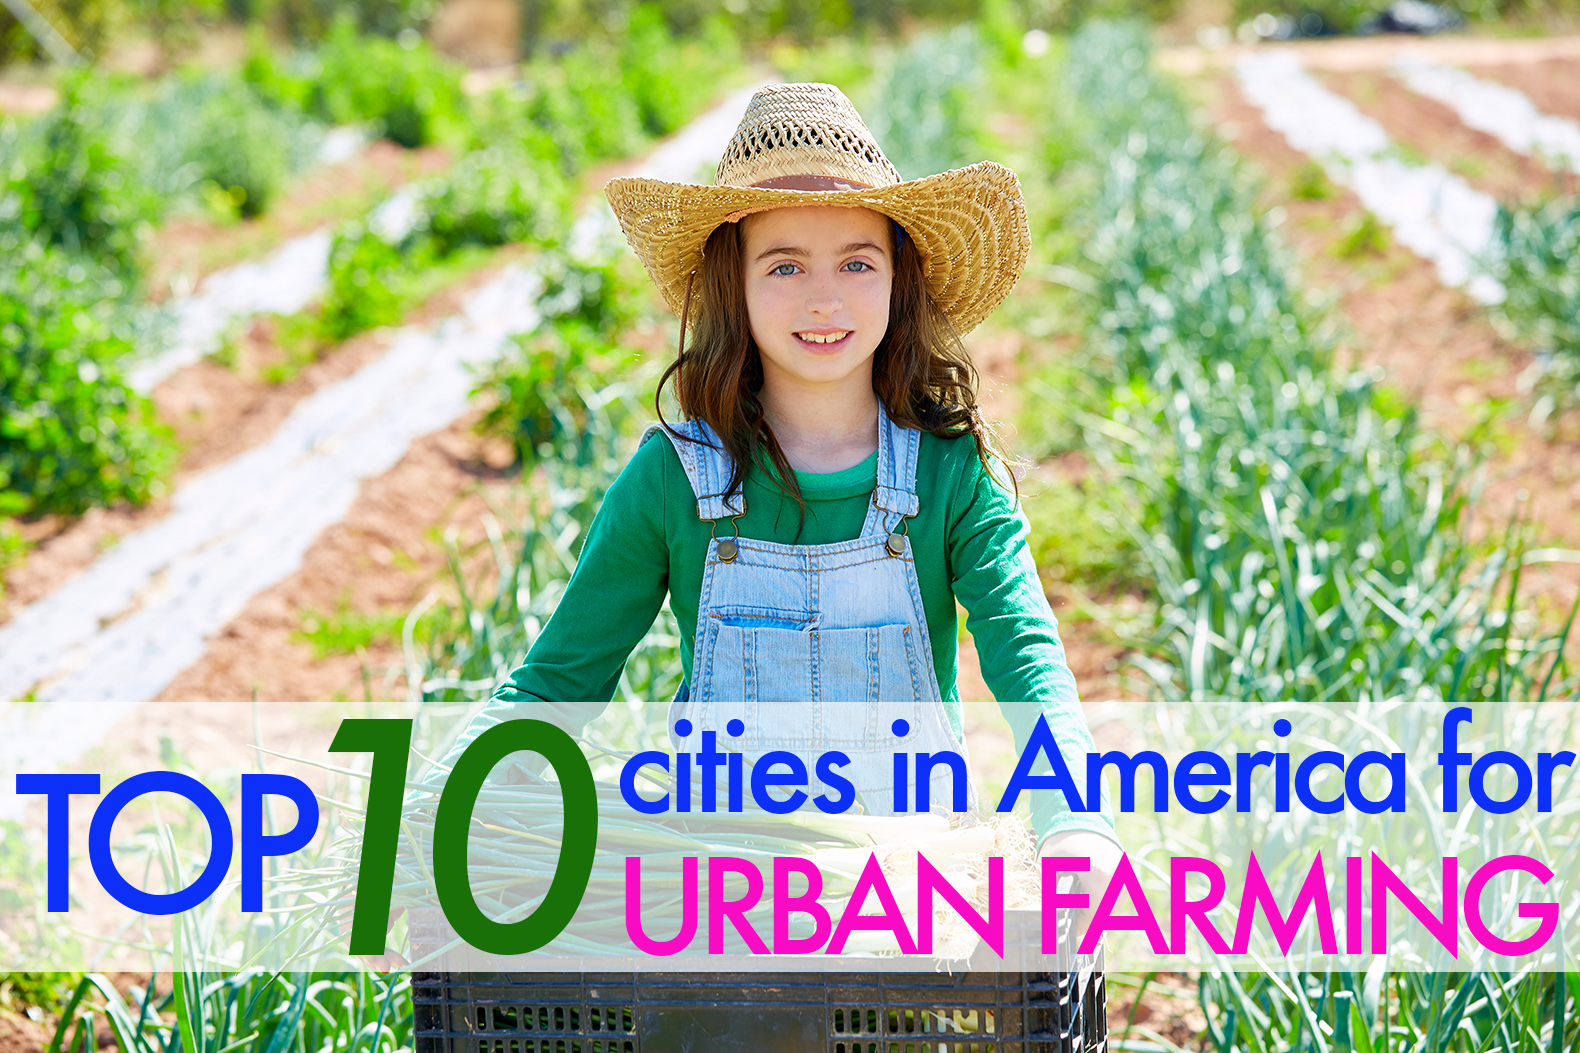 Top 10 cities in the U.S. for urban farming